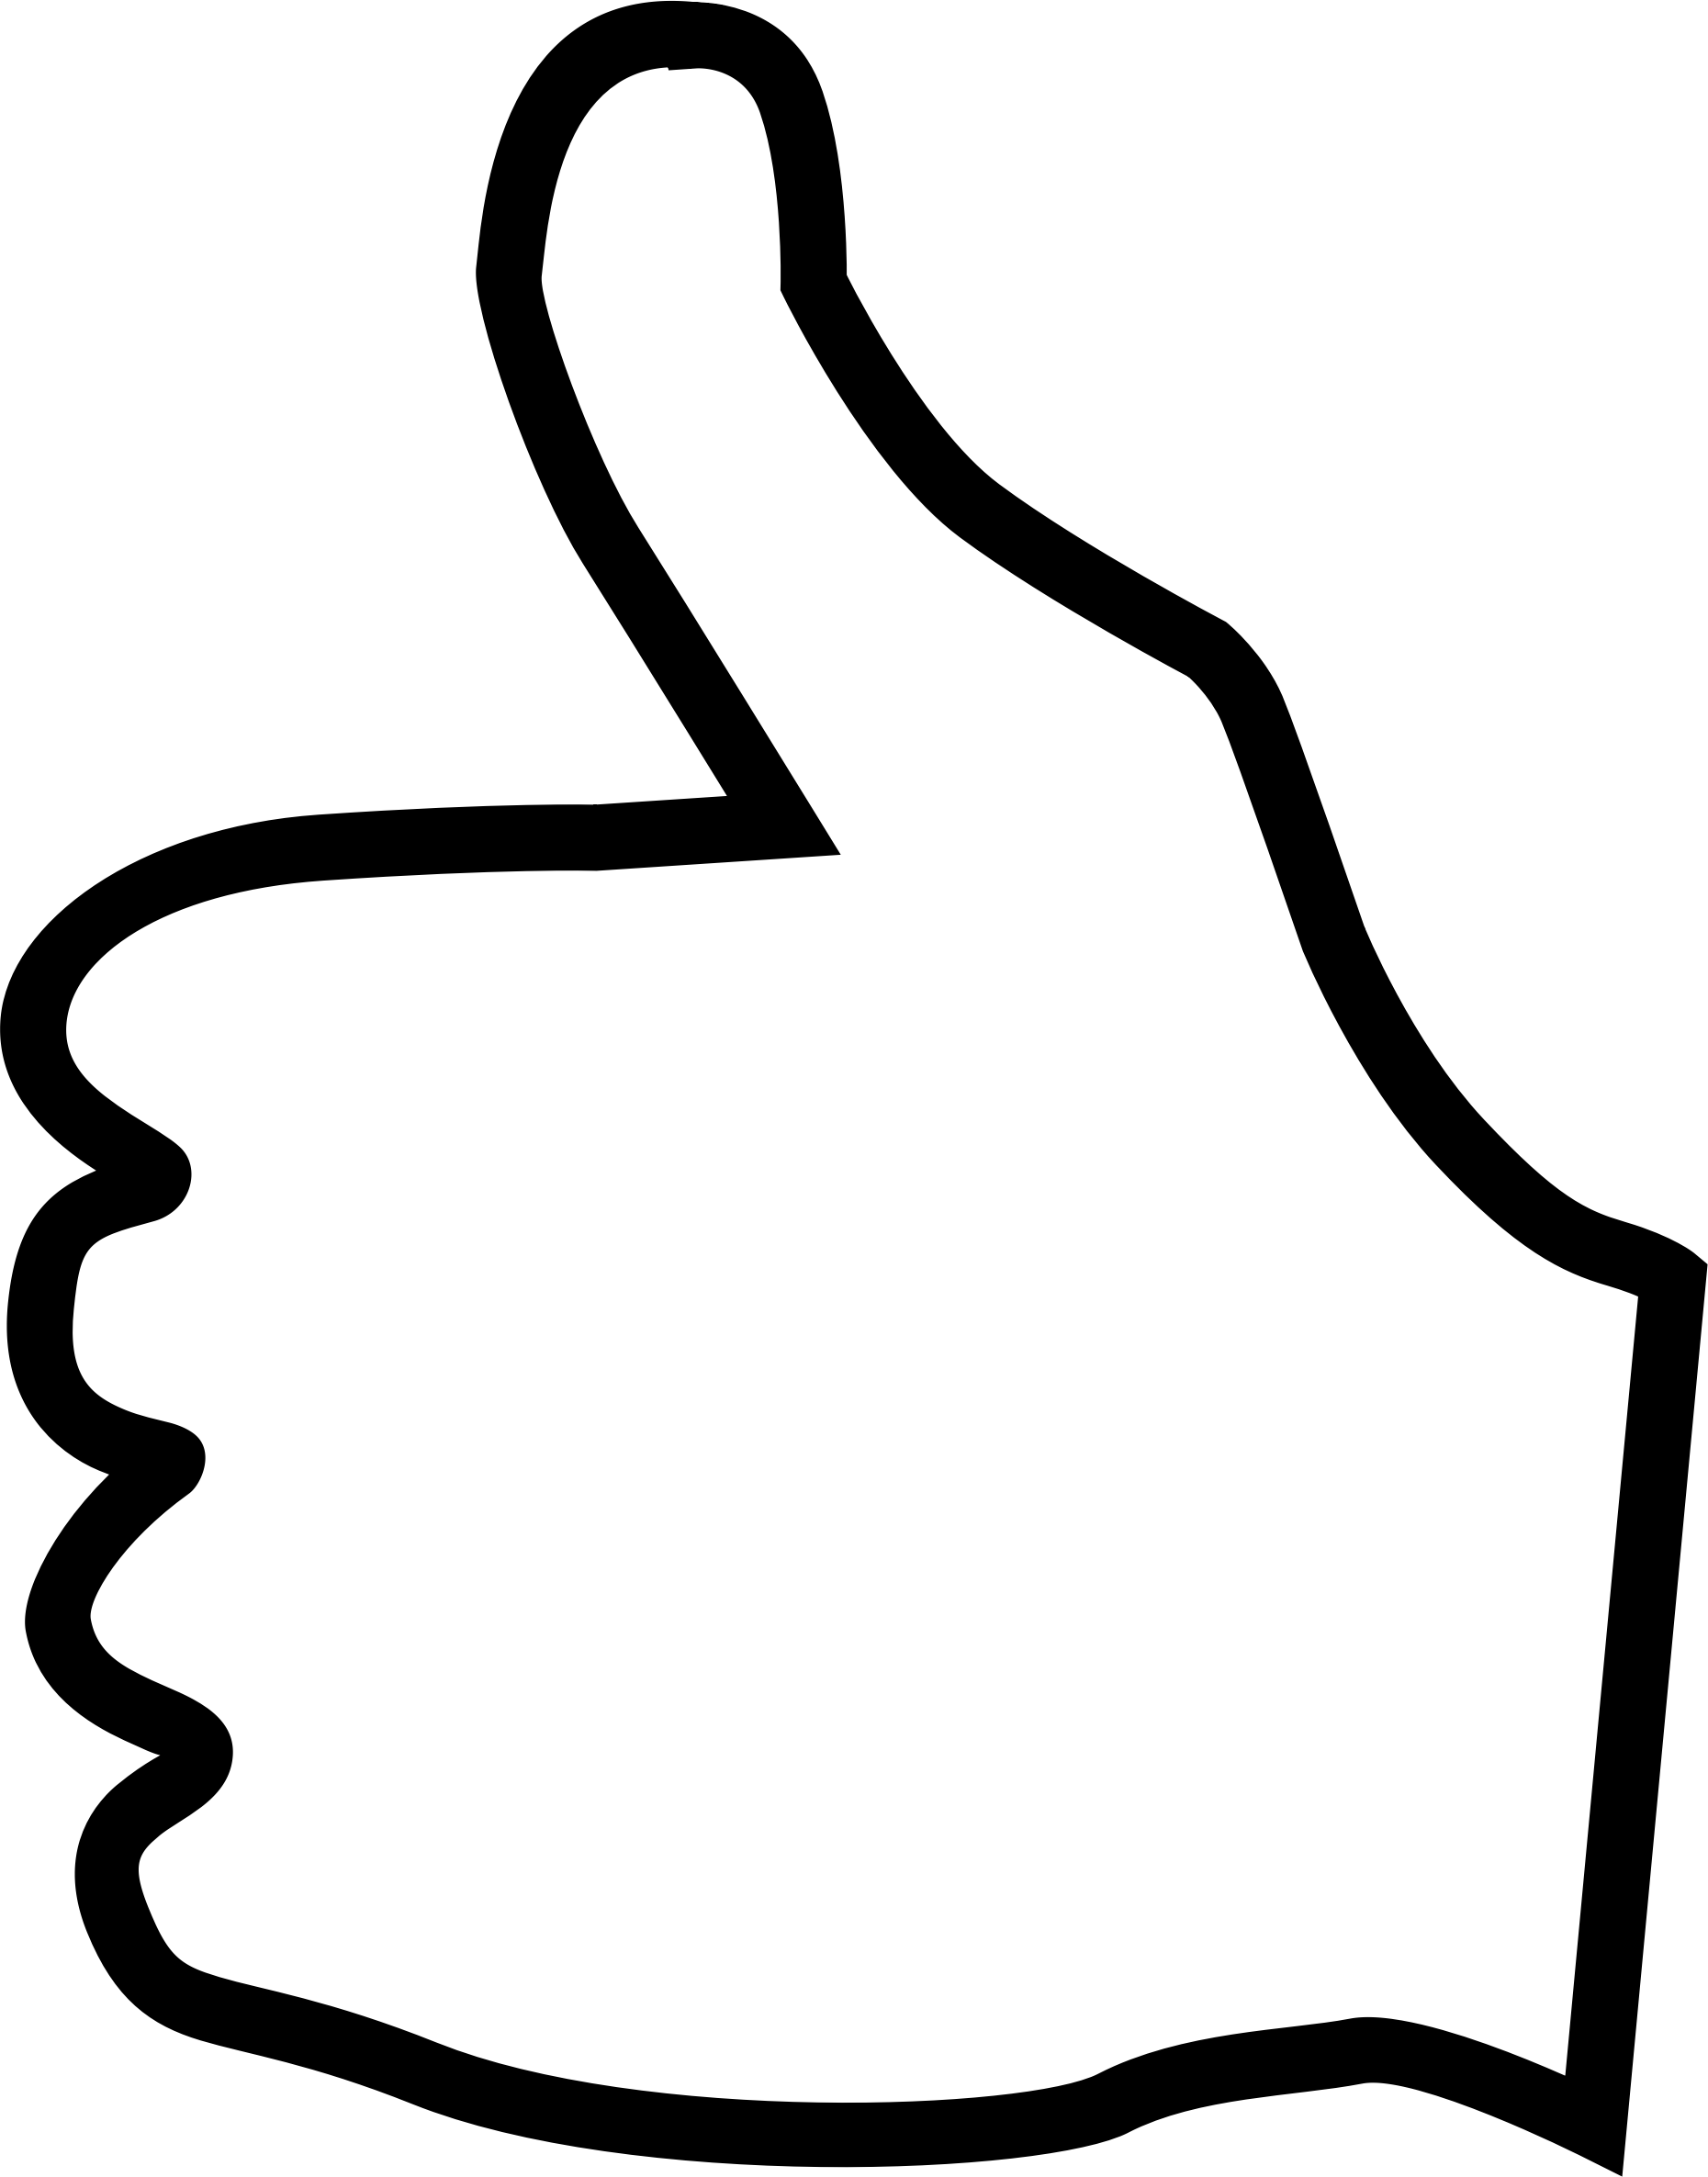 ... Free Thumbs Up Clipart Pictures - Cl-... Free Thumbs Up Clipart Pictures - Clipartix ...-2